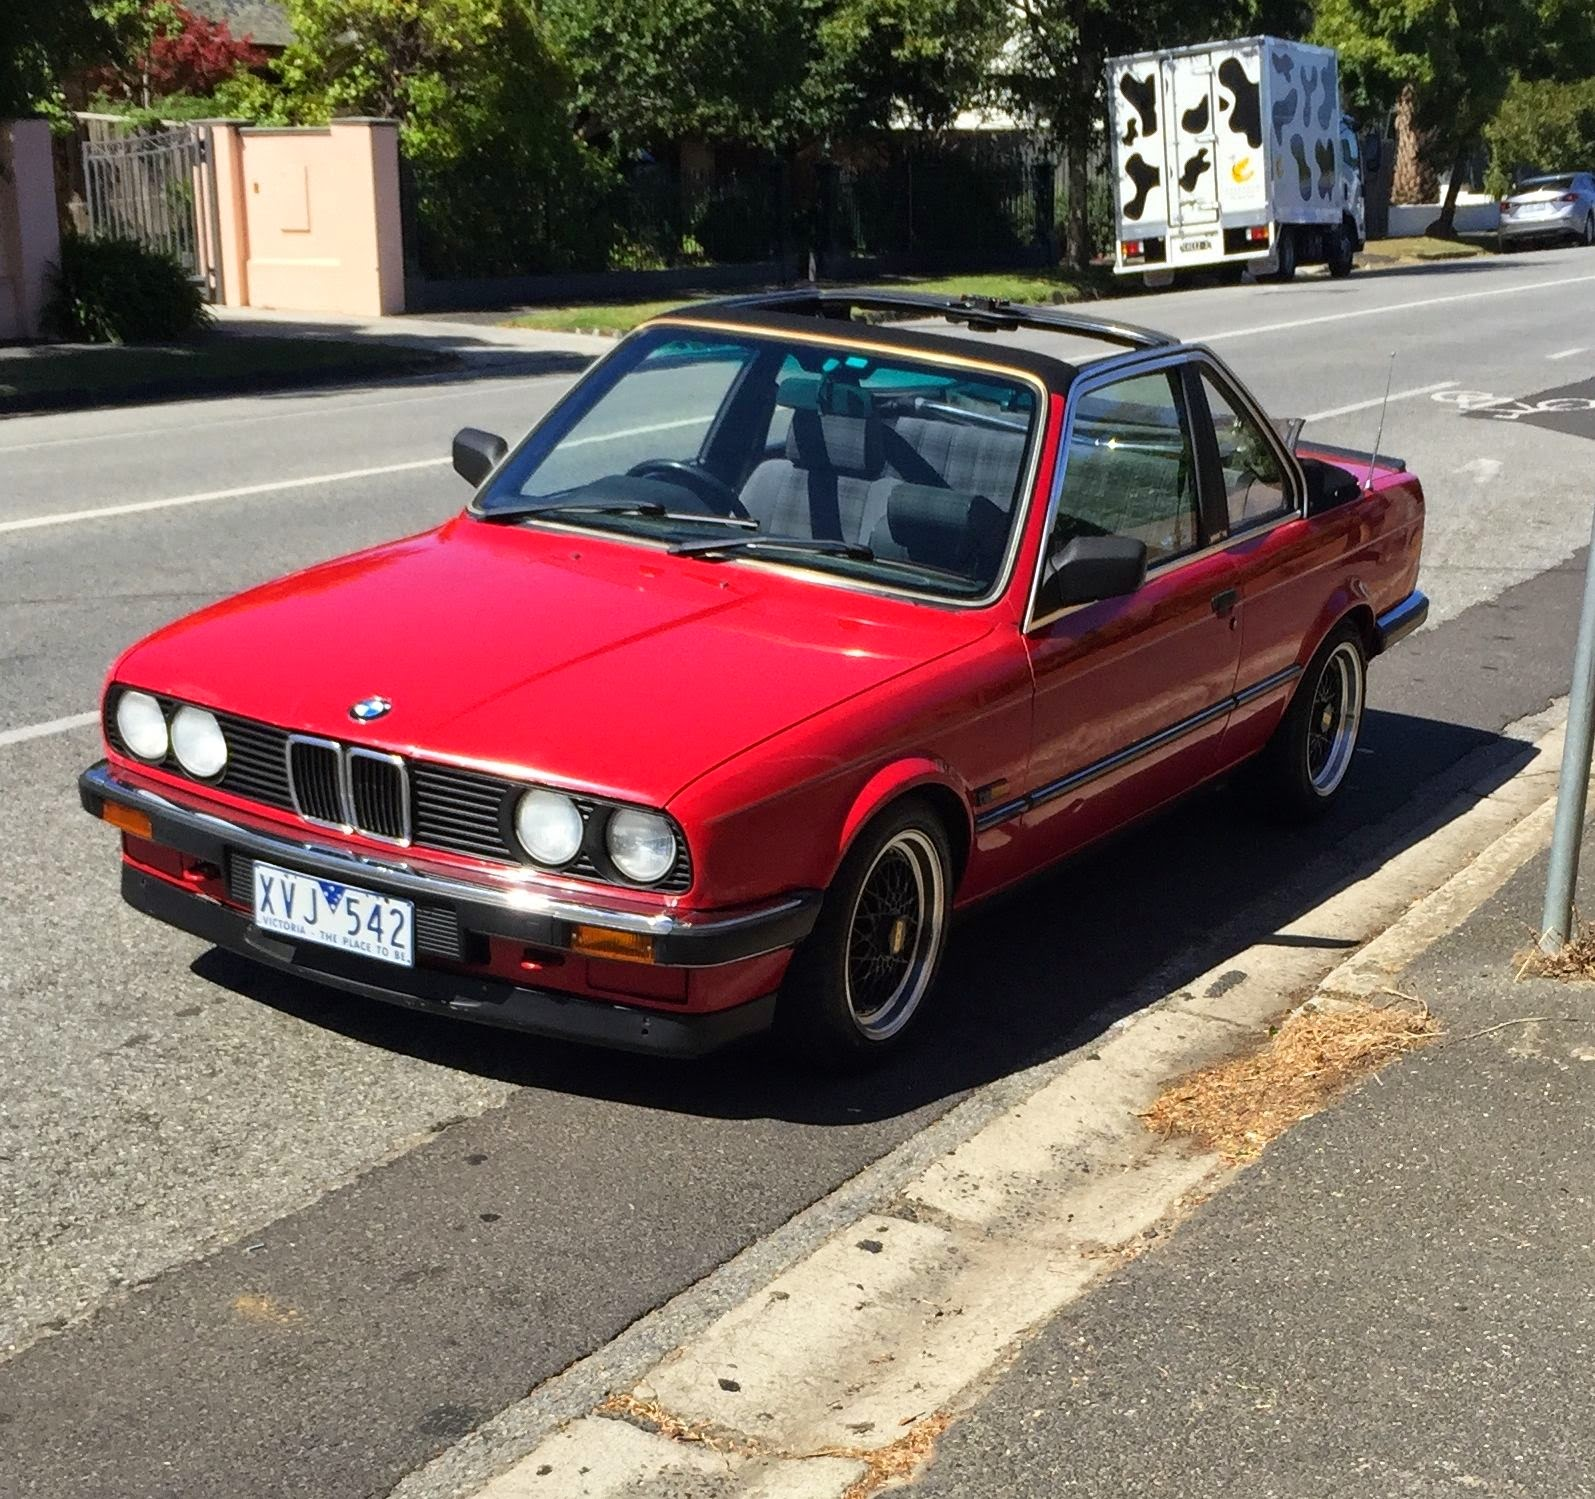 hight resolution of baurspotting 1985 bmw e30 318i tc baur manual for sale in australia rh baurspotting blogspot com 1984 bmw 318i interior 1984 bmw 318i engine diagram